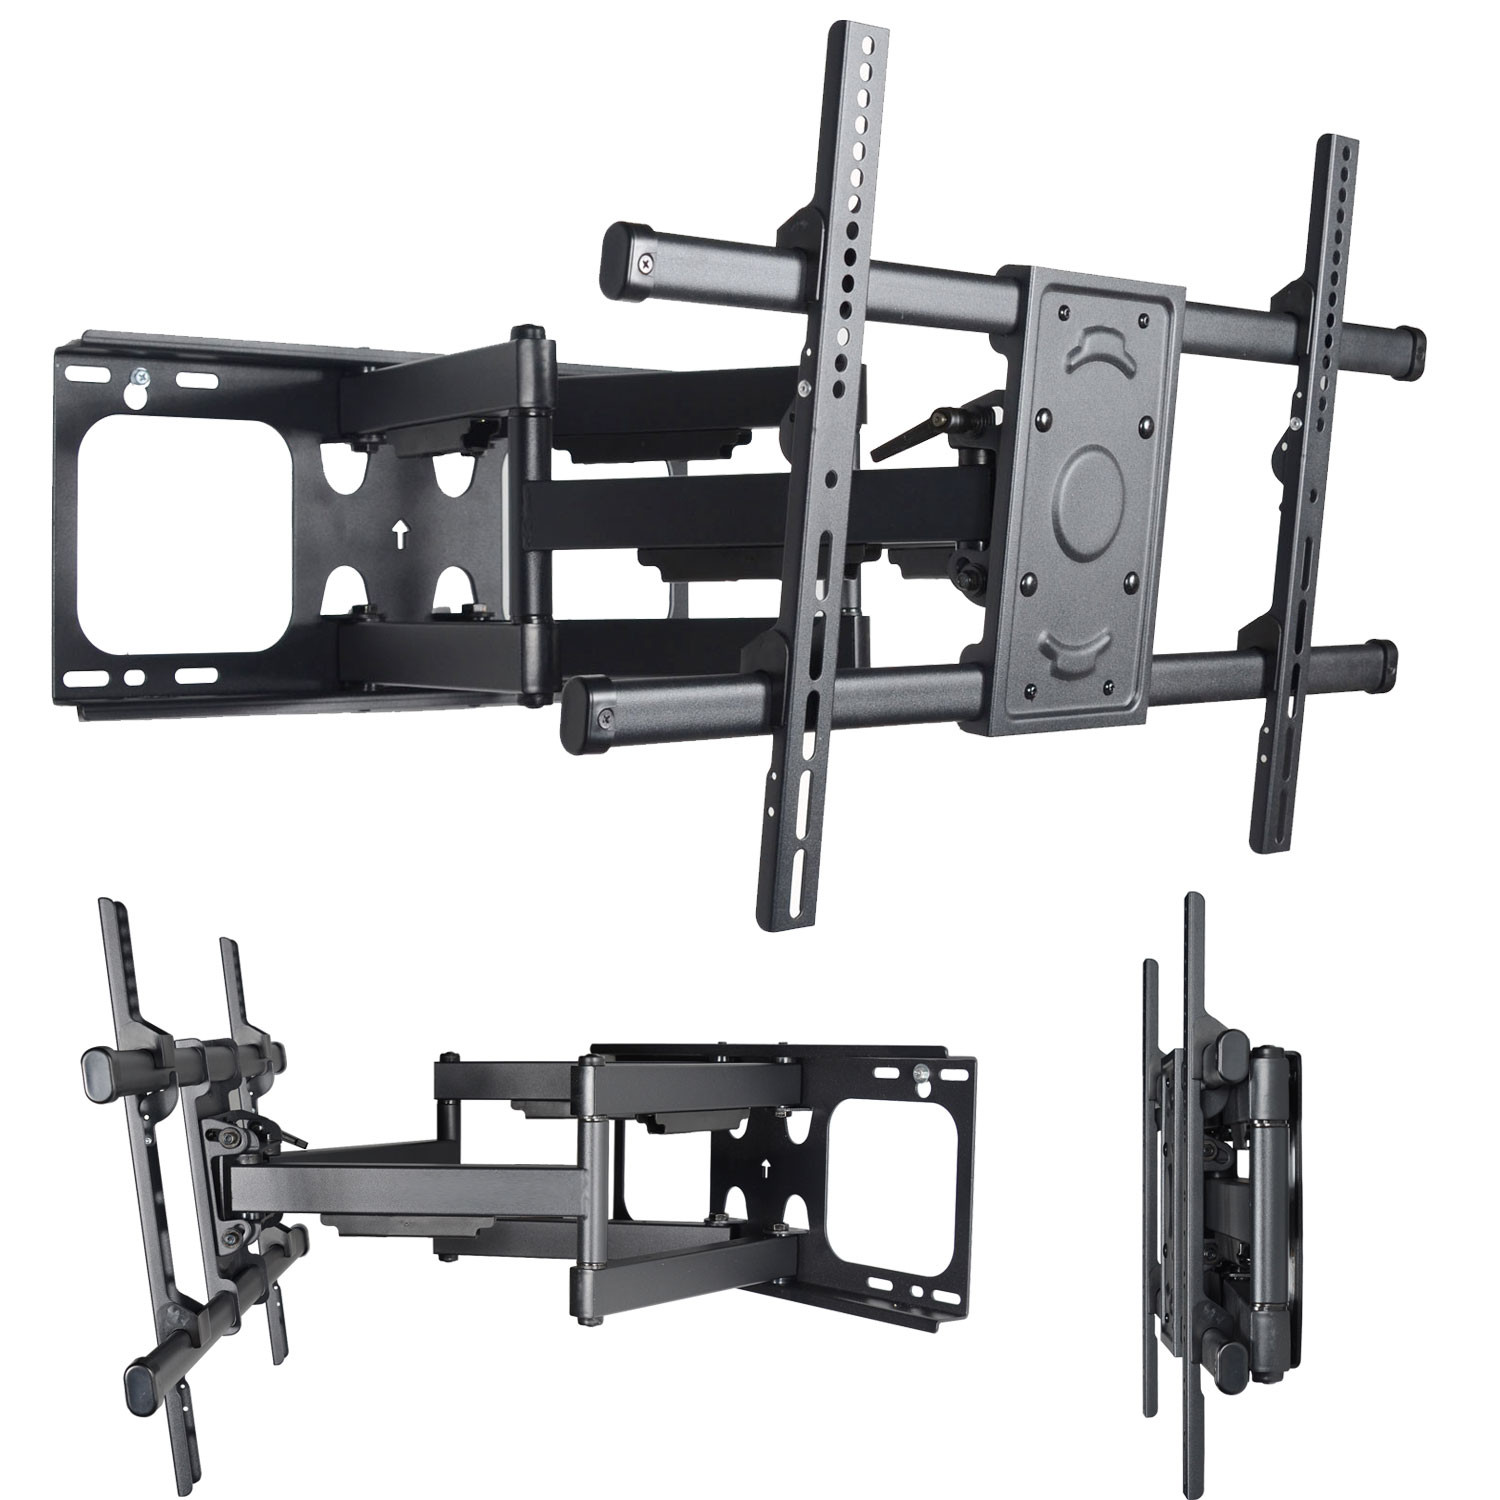 "VideoSecu Articulating TV Wall Mount for most 39-70"" LCD LED Plasma HDTV UHD Display Heavy Duty Tilt Dual Arm MW390B B0Z"